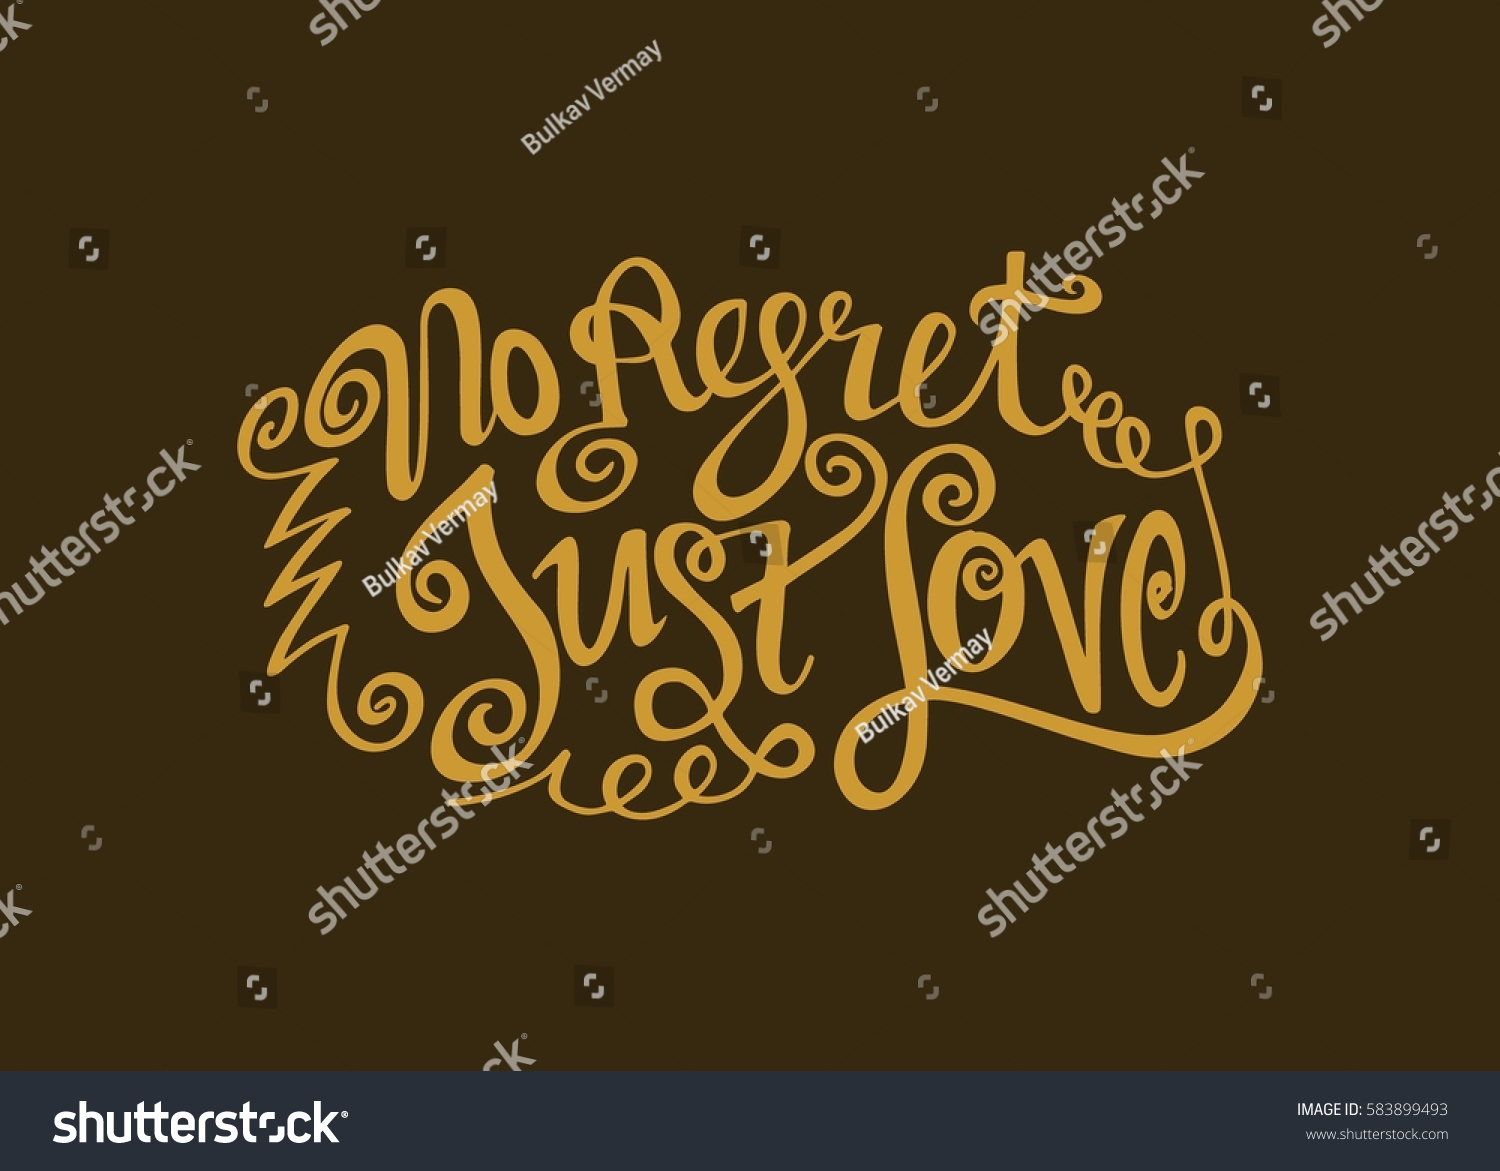 No regret just love hand lettered stock vector